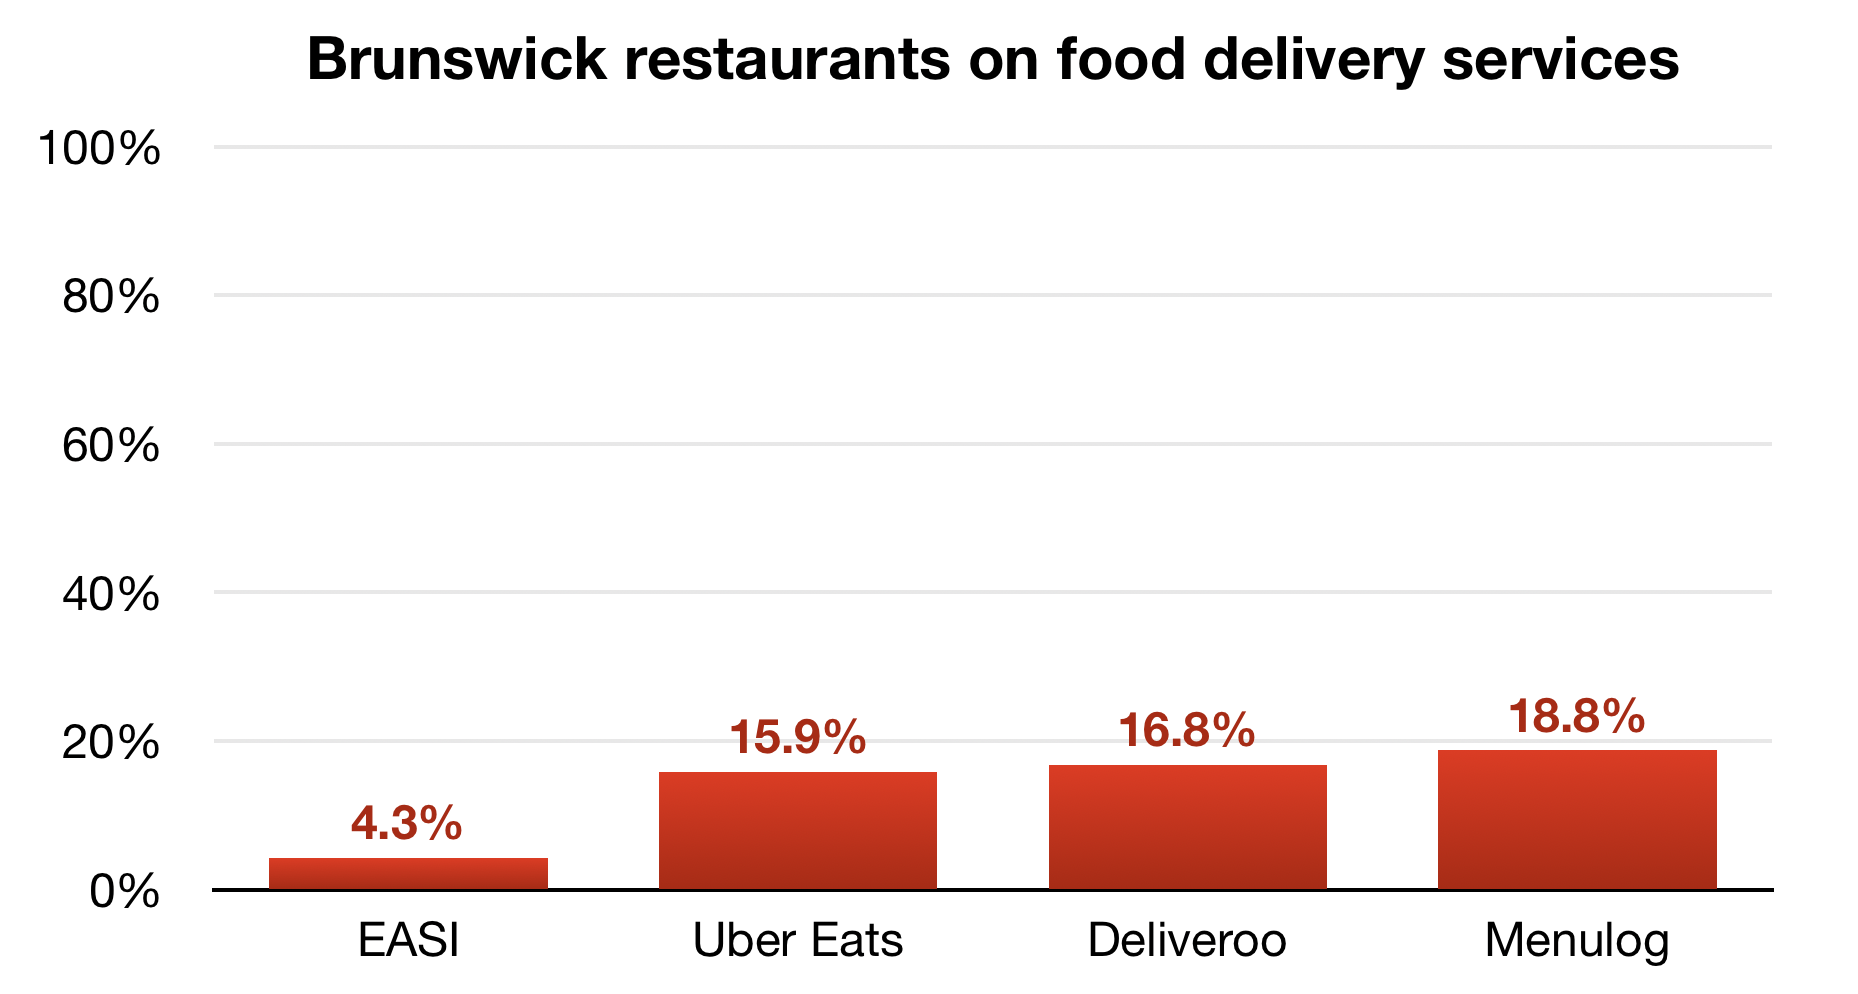 Brunswick restaurants on food delivery services: EASI, Uber Eats, Deliveroo, Menulog